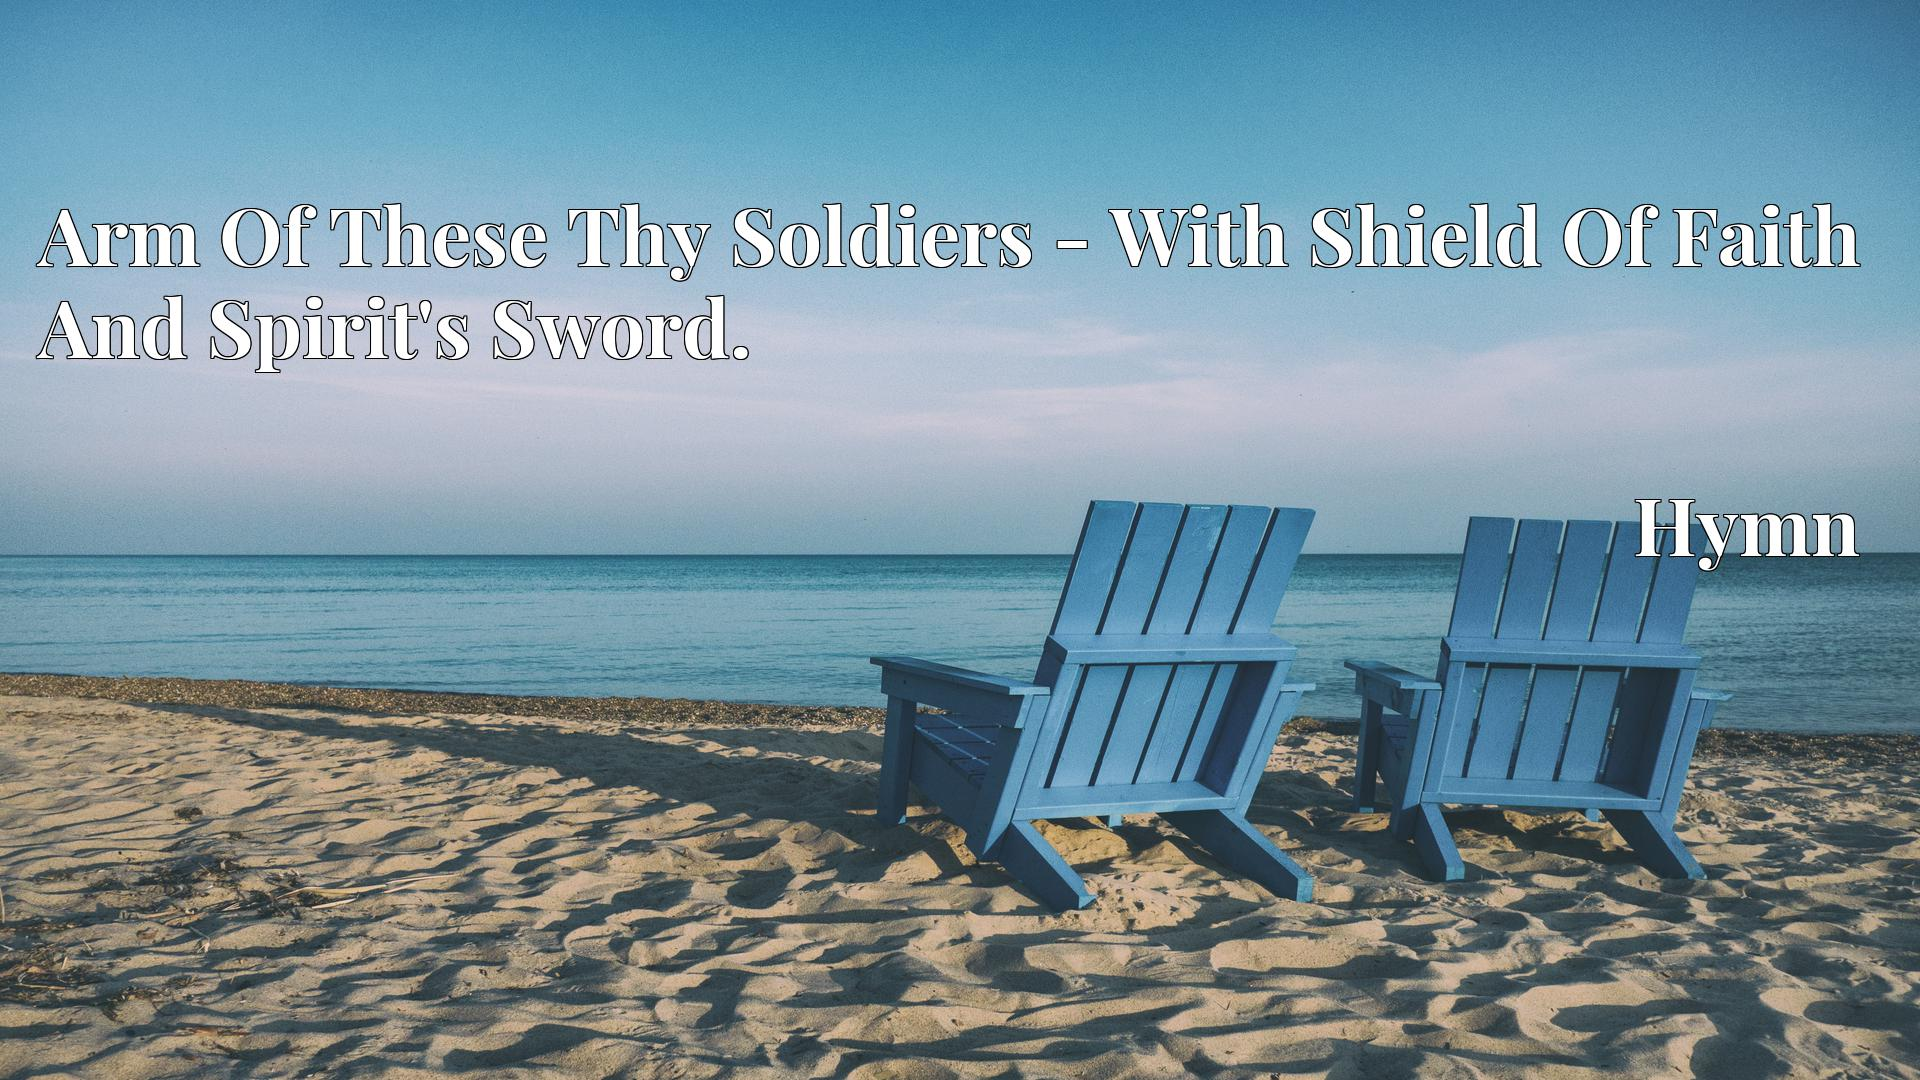 Arm Of These Thy Soldiers - With Shield Of Faith And Spirit's Sword. - Hymn